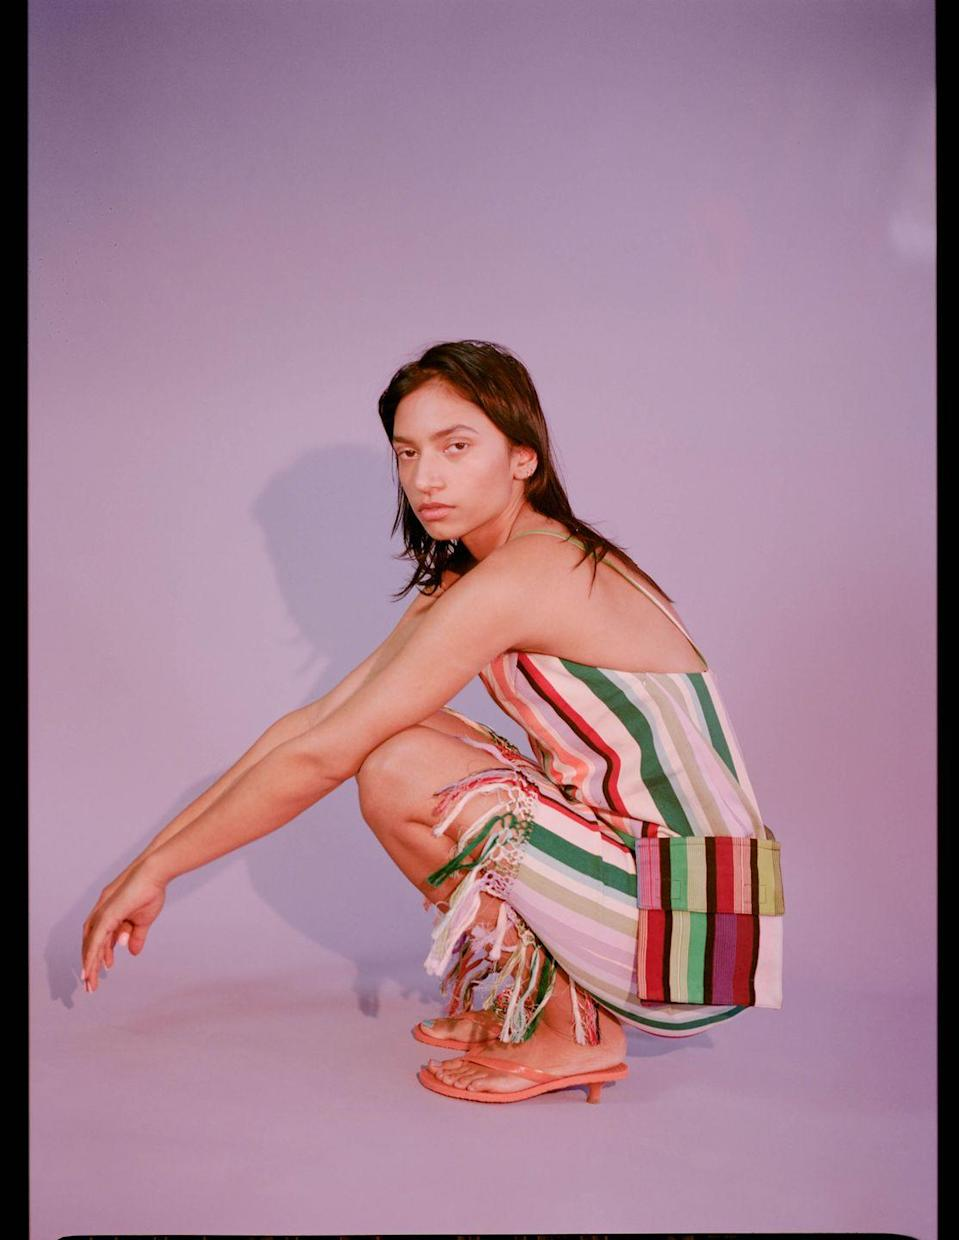 <p>Mozh Mozh is a whimsical, slow-fashion line that celebrates the native artisans creating signature Peruvian textiles and clothing techniques. The brand prides itself on its usage of quality alpaca, cotton, wool, and natural rubber, which are all native to the South American country. </p>